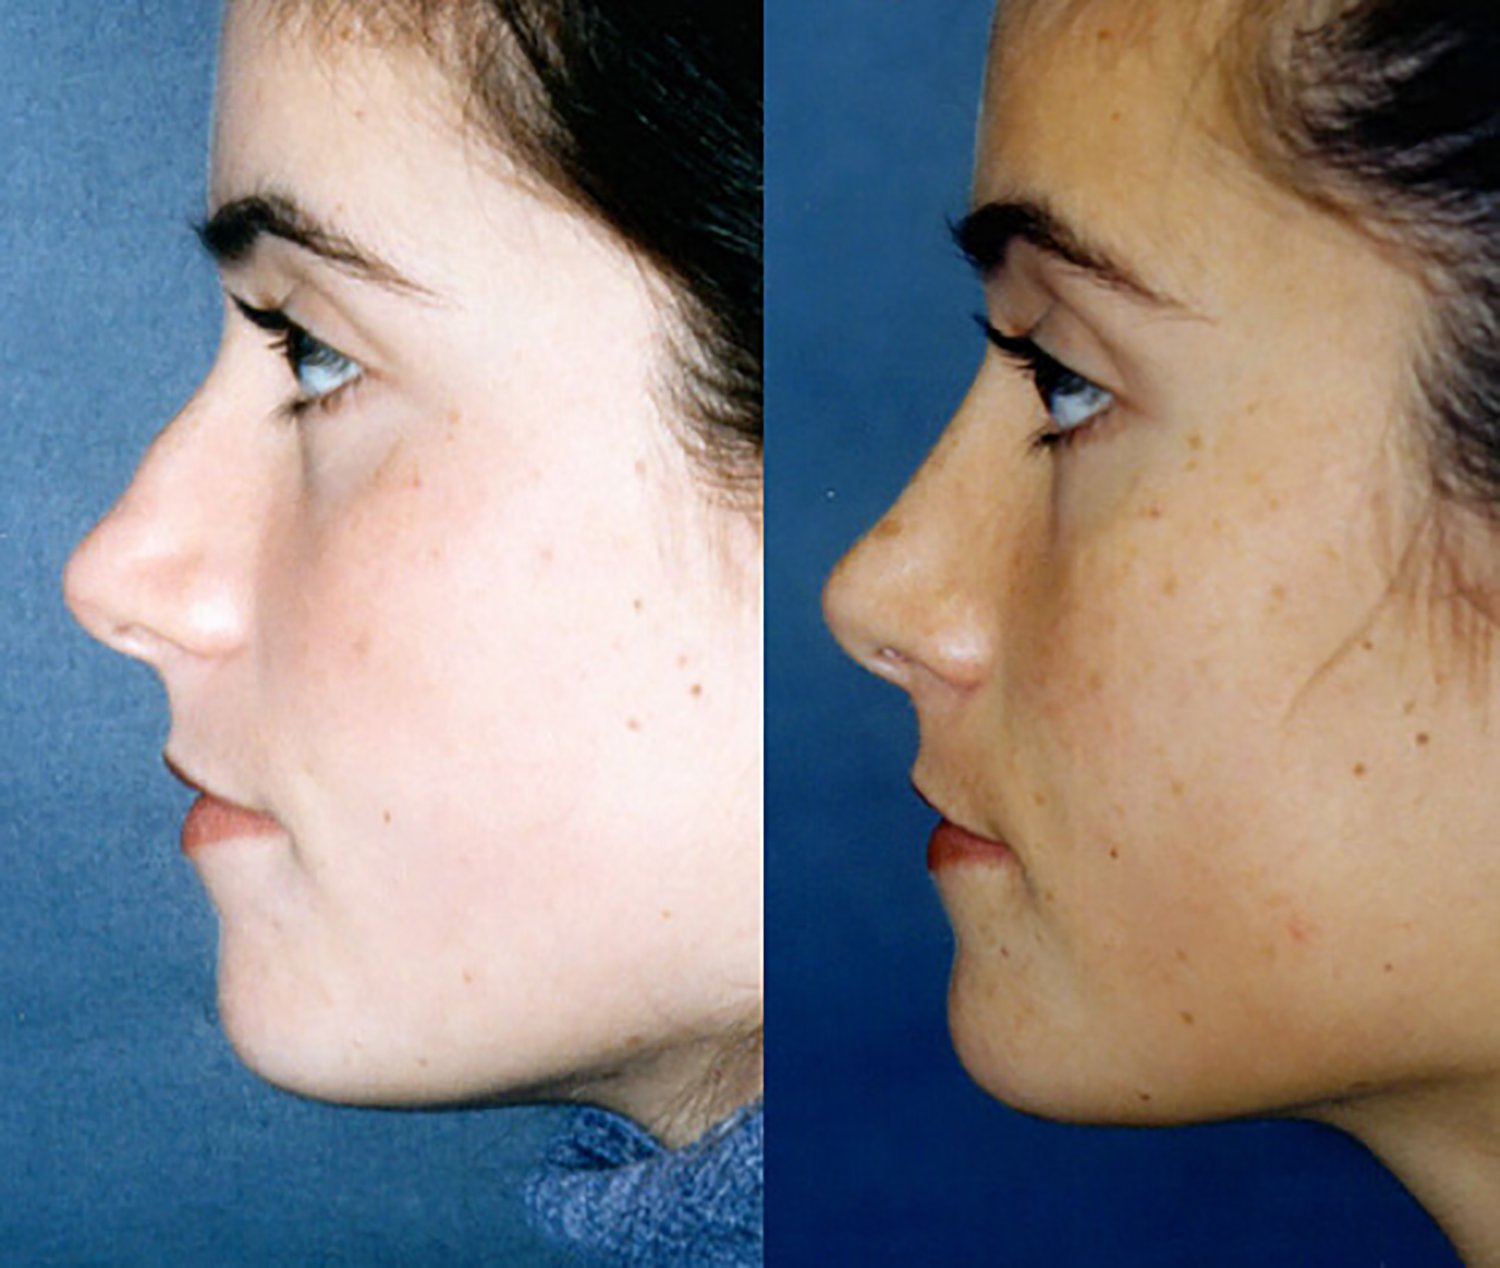 Broad nose with bump after bony fracture side